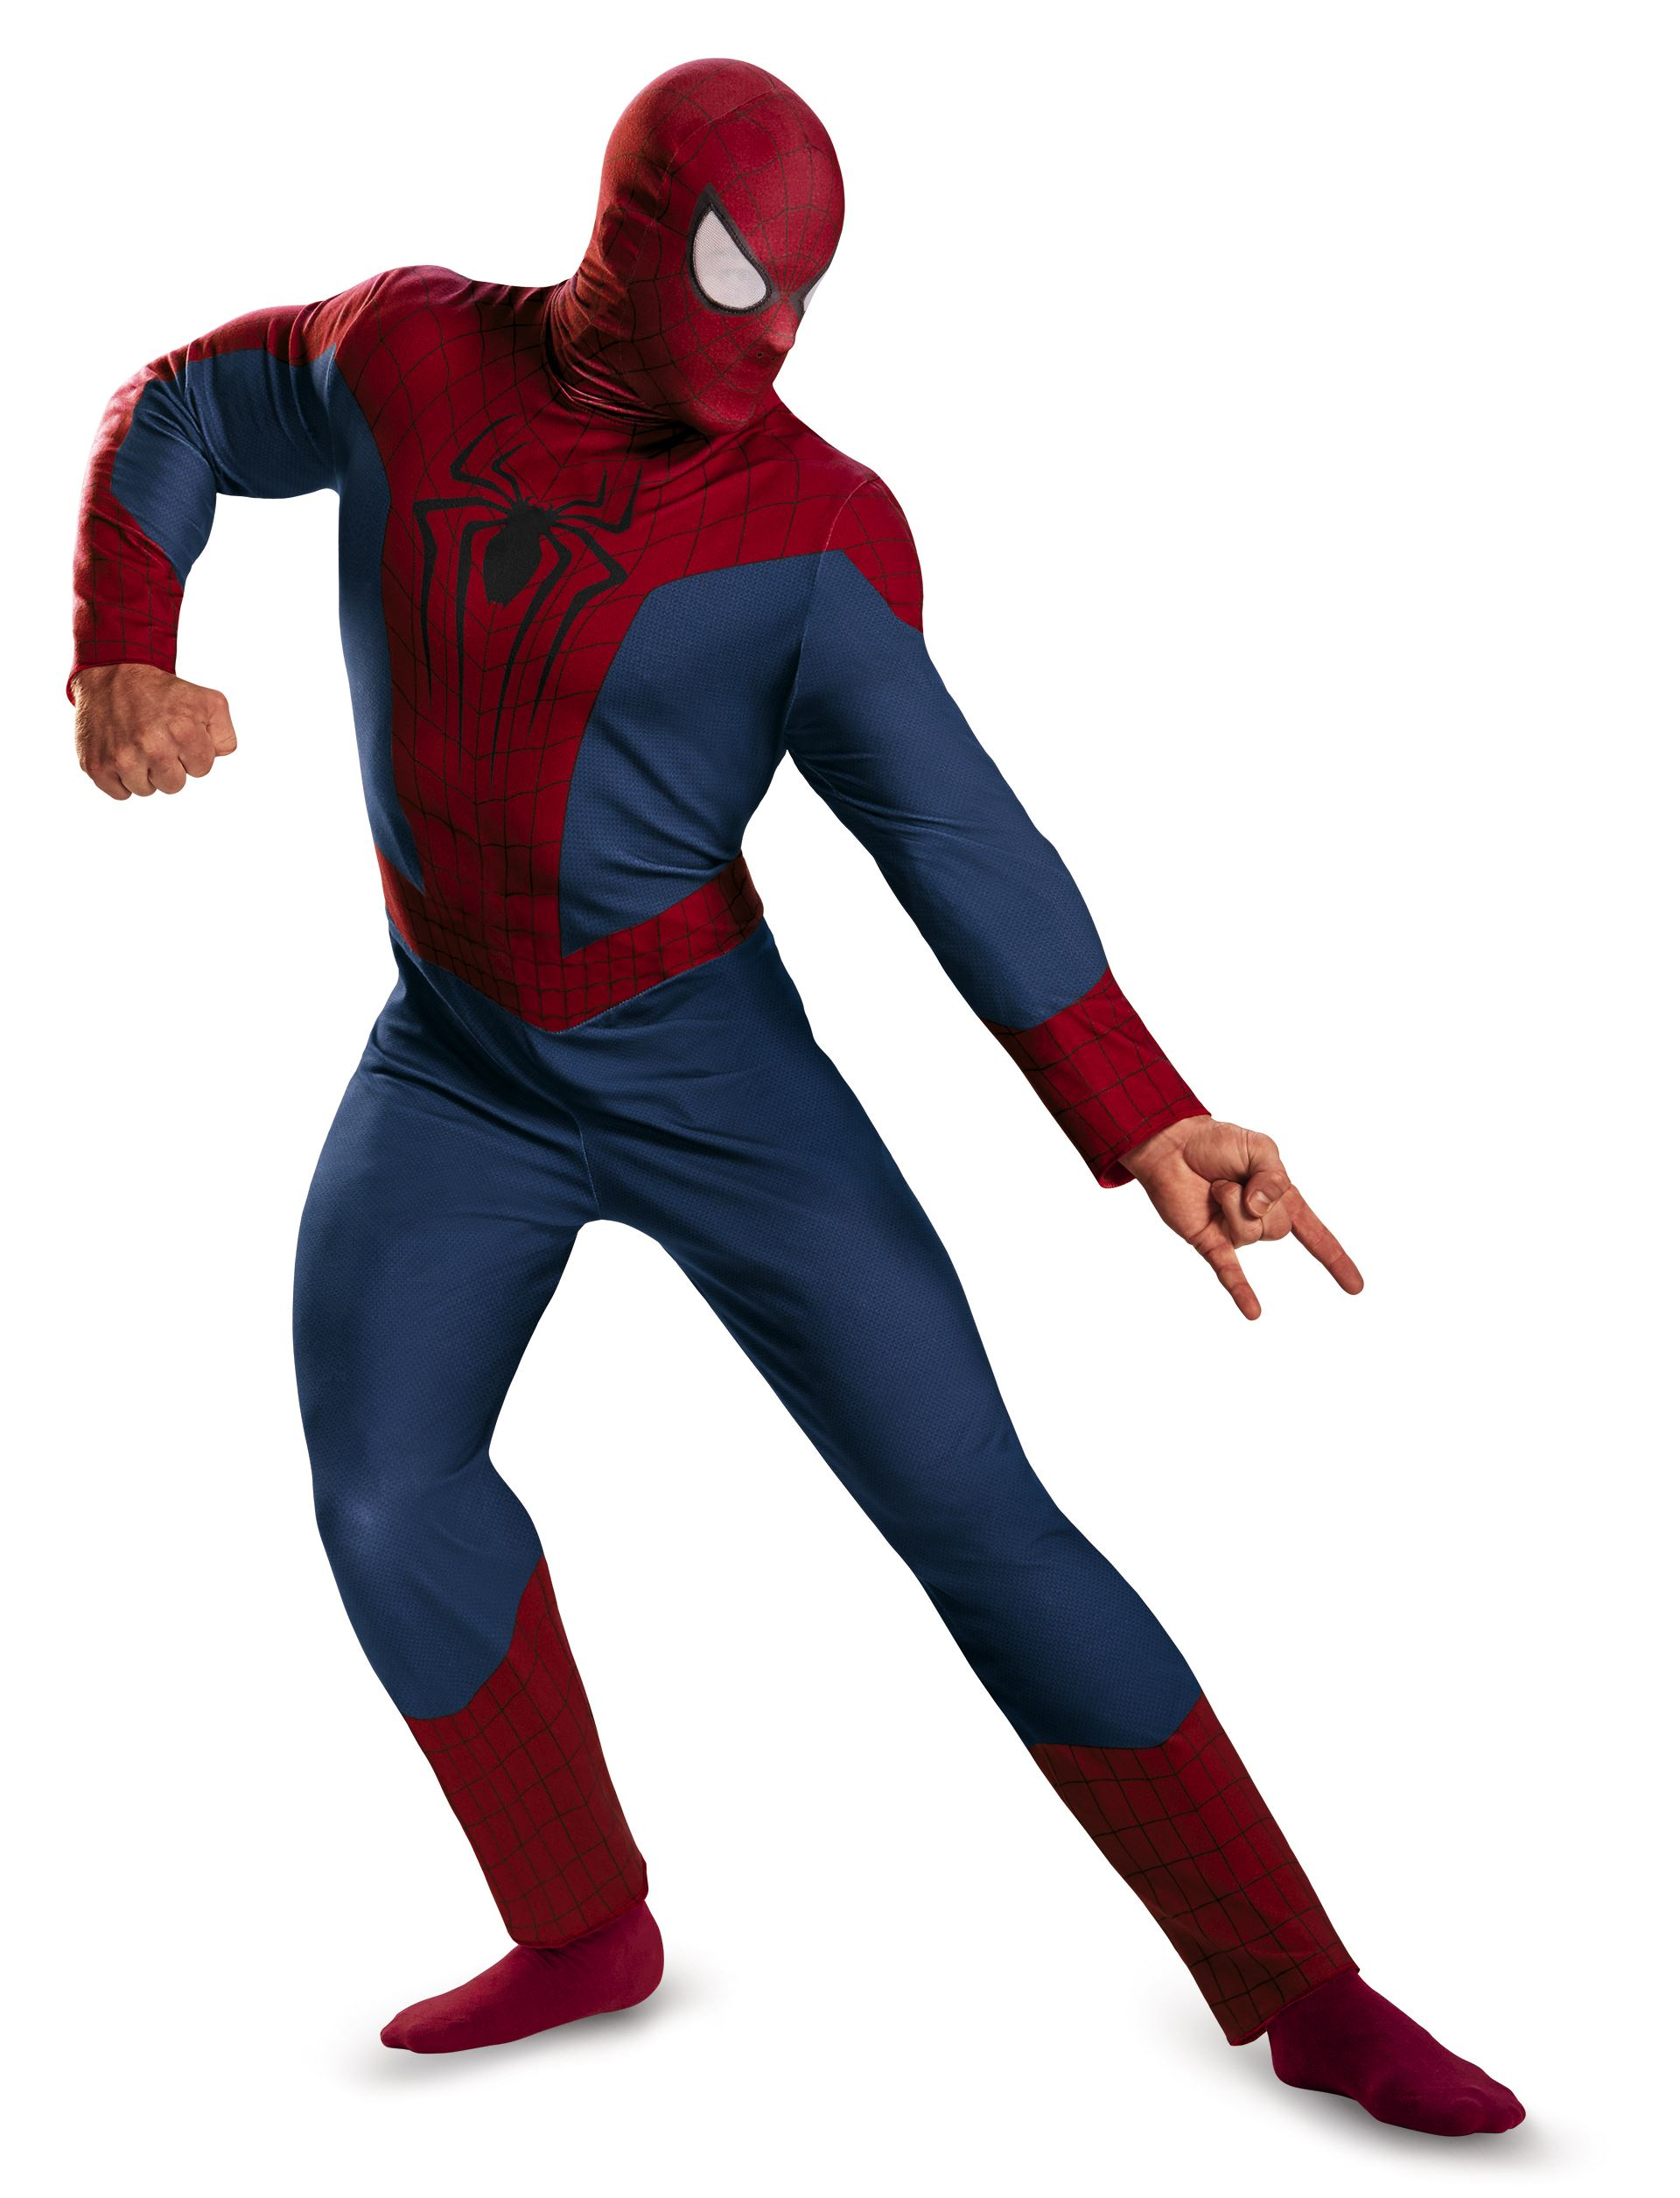 adult amazing spider man plus men costume 2199 the costume land adult amazing spider man plus men costume 21 99 the costume land - Classic Mens Halloween Costumes